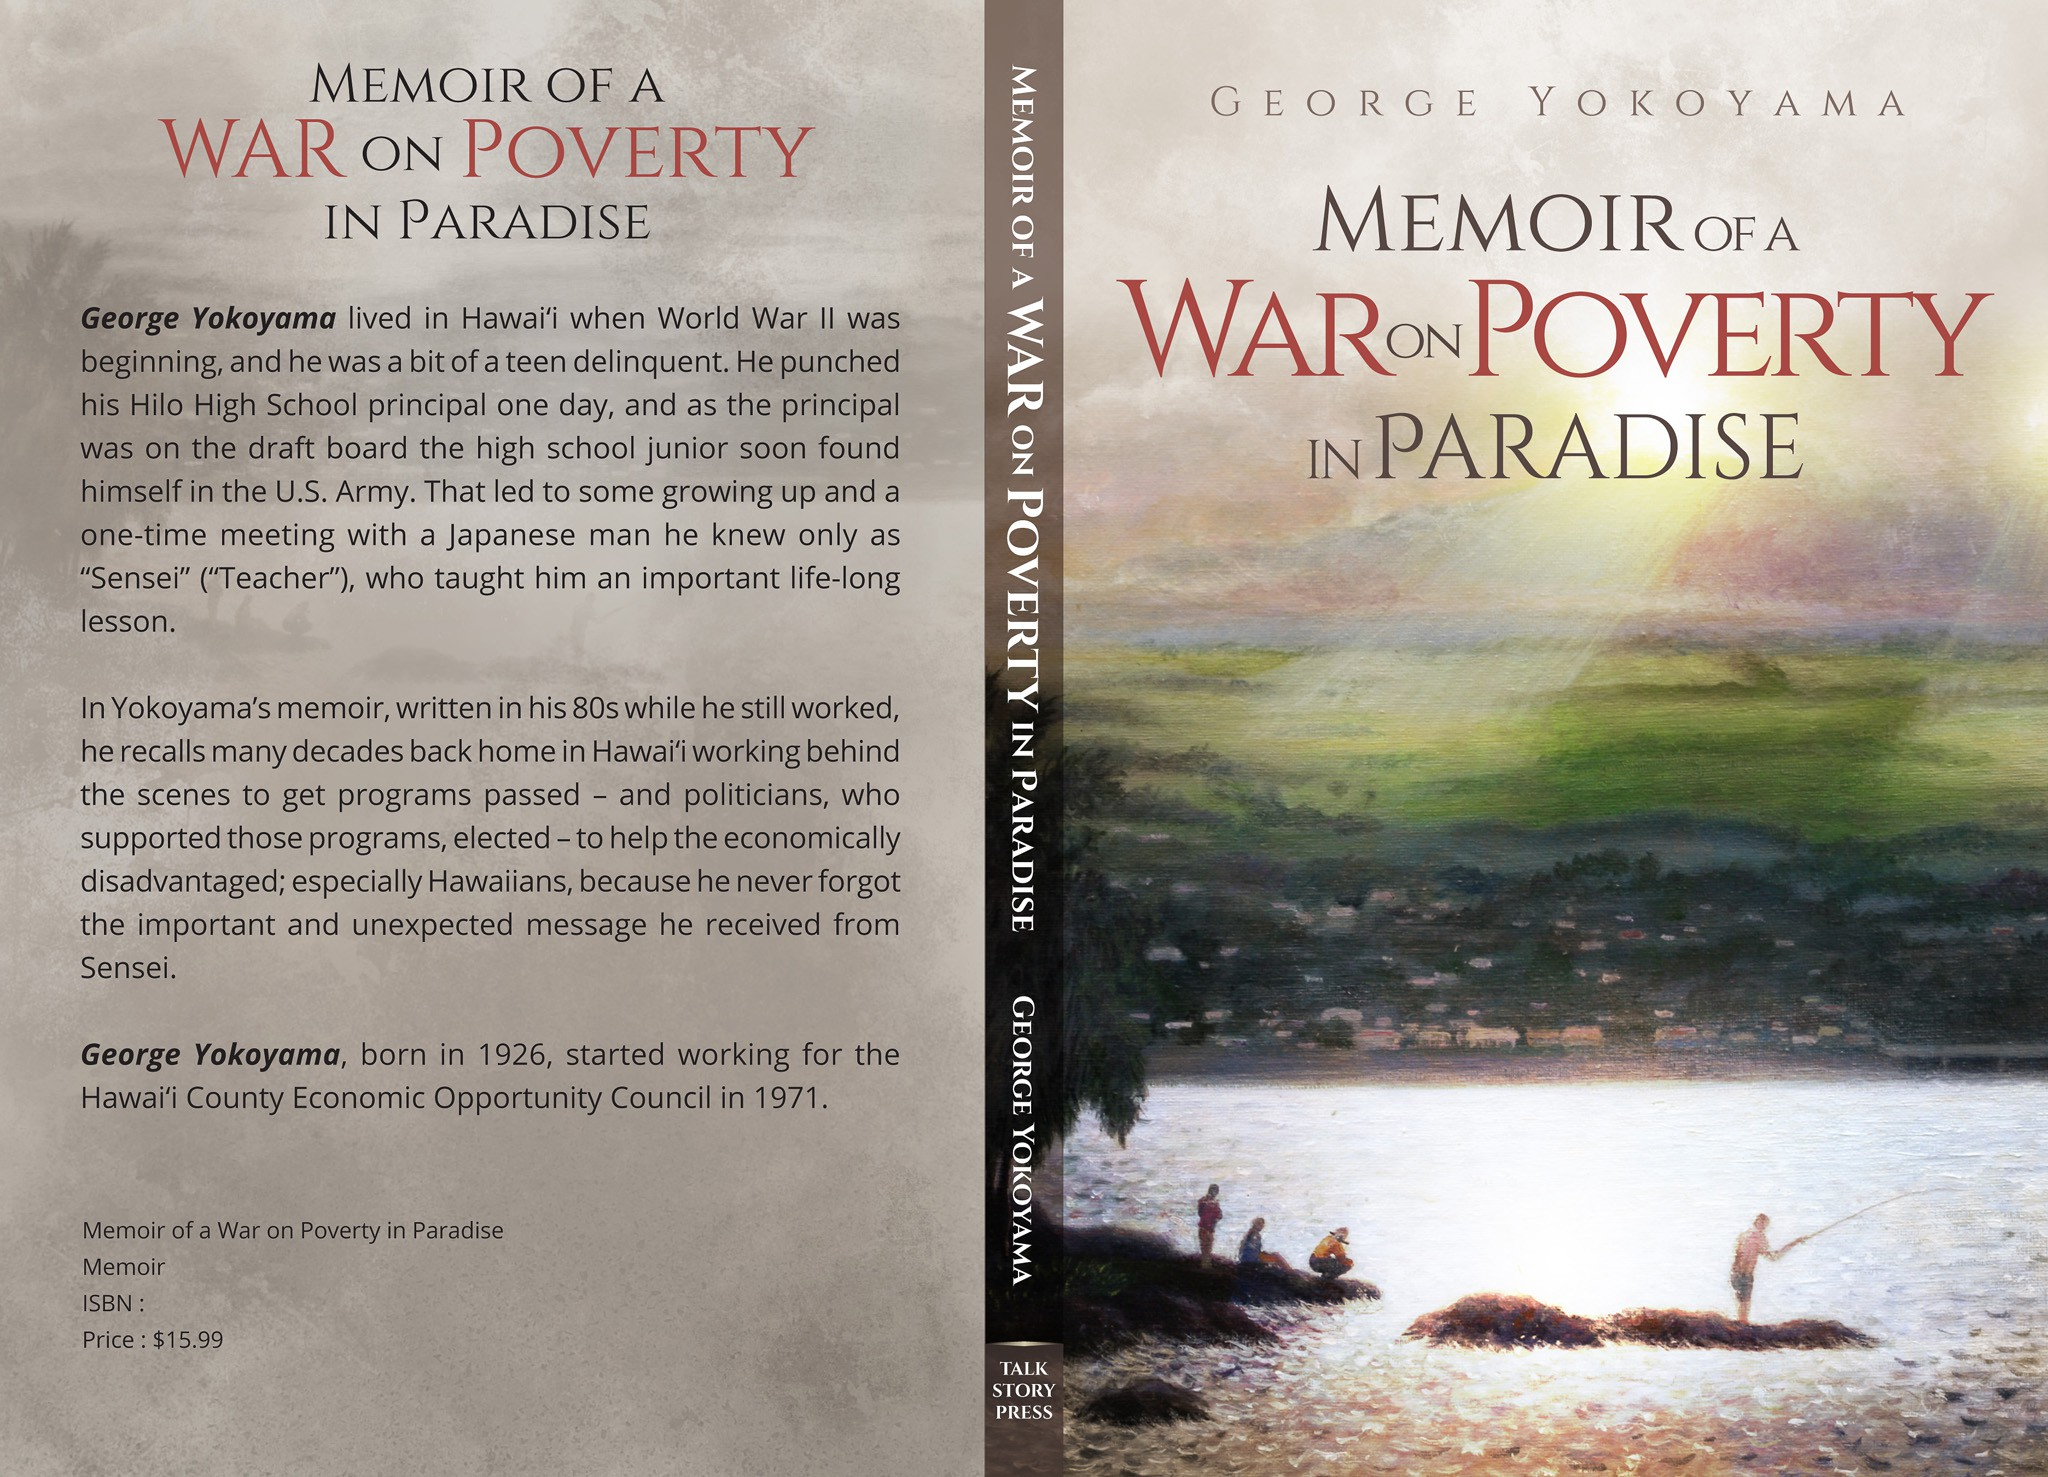 Help create a captivating cover for this memoir.